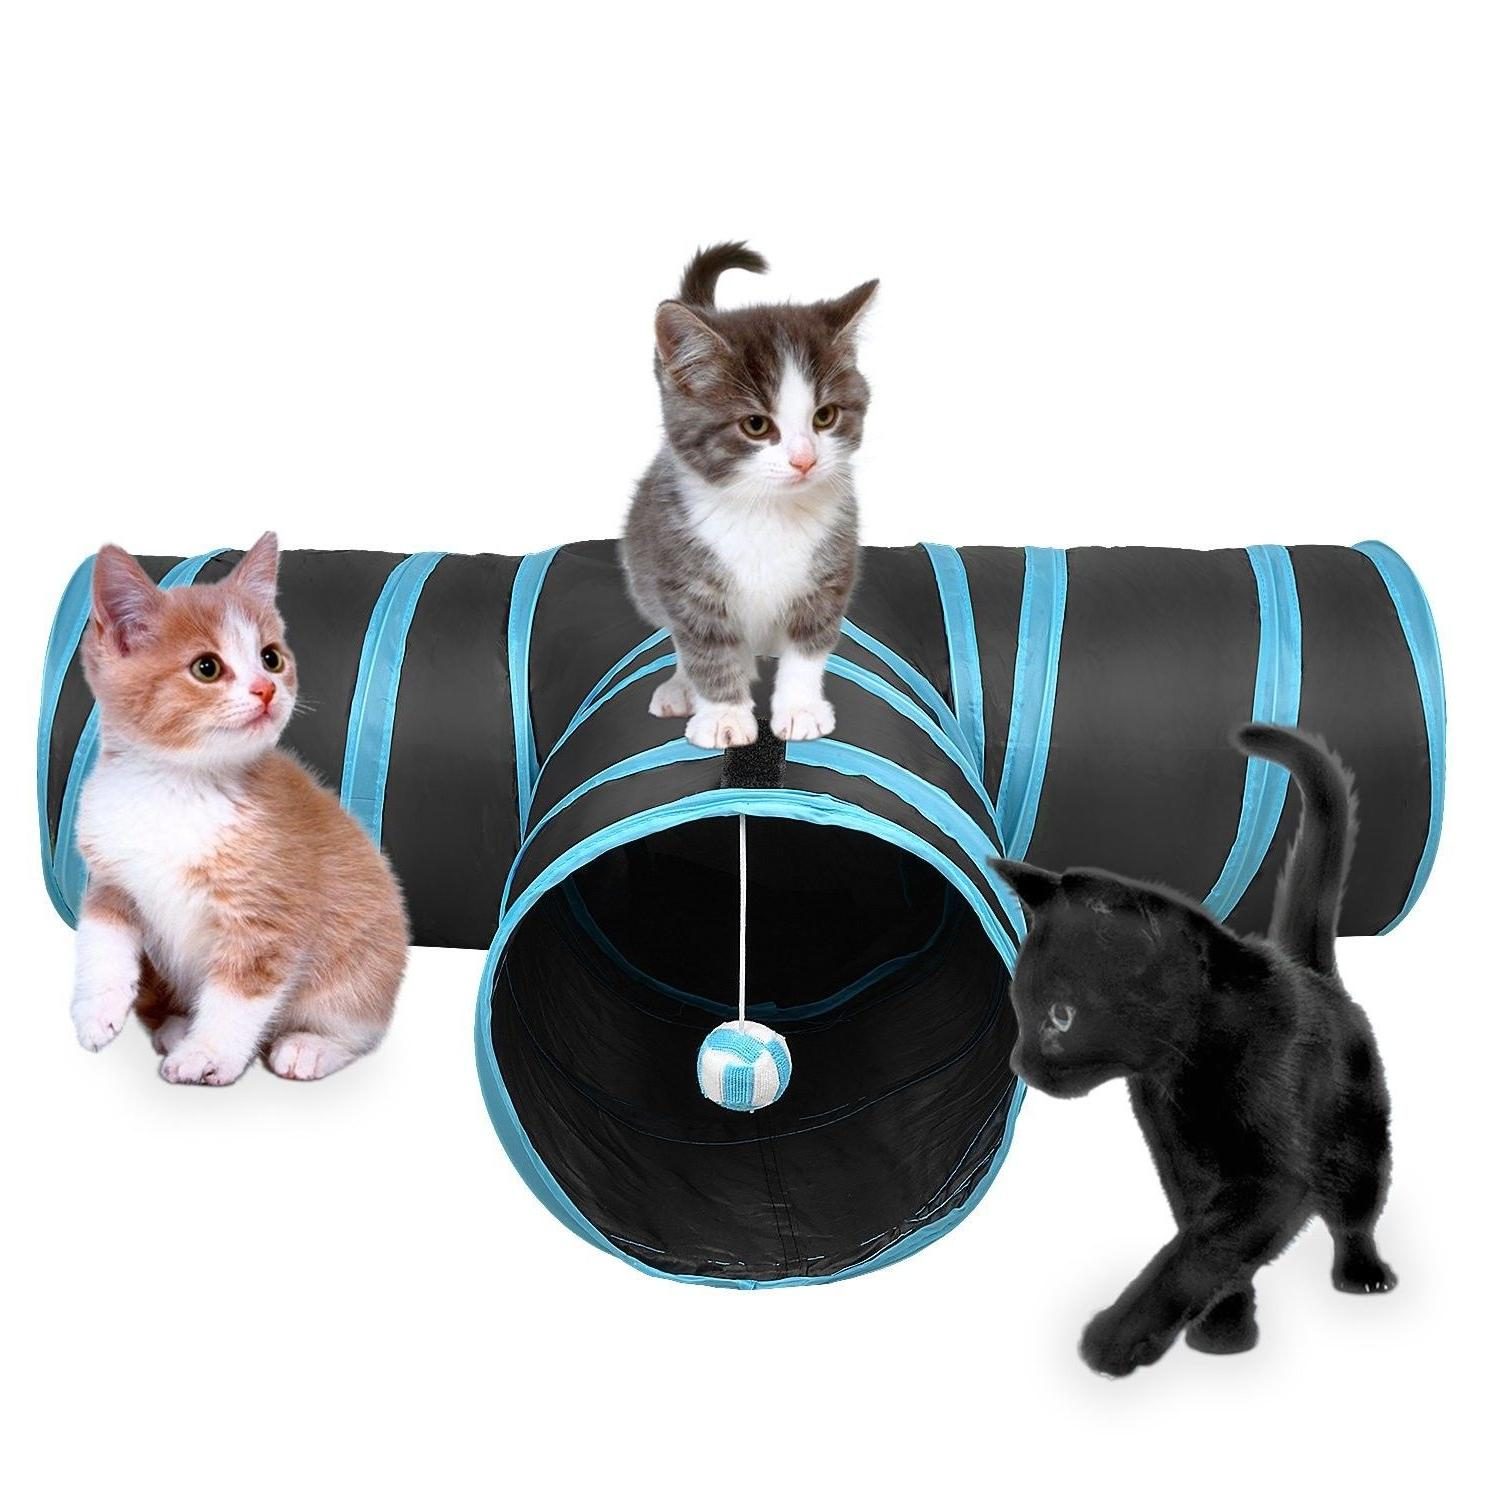 Creaker 3 Way Cat Tunnel - Collapsible Pet Toy with Ball f/